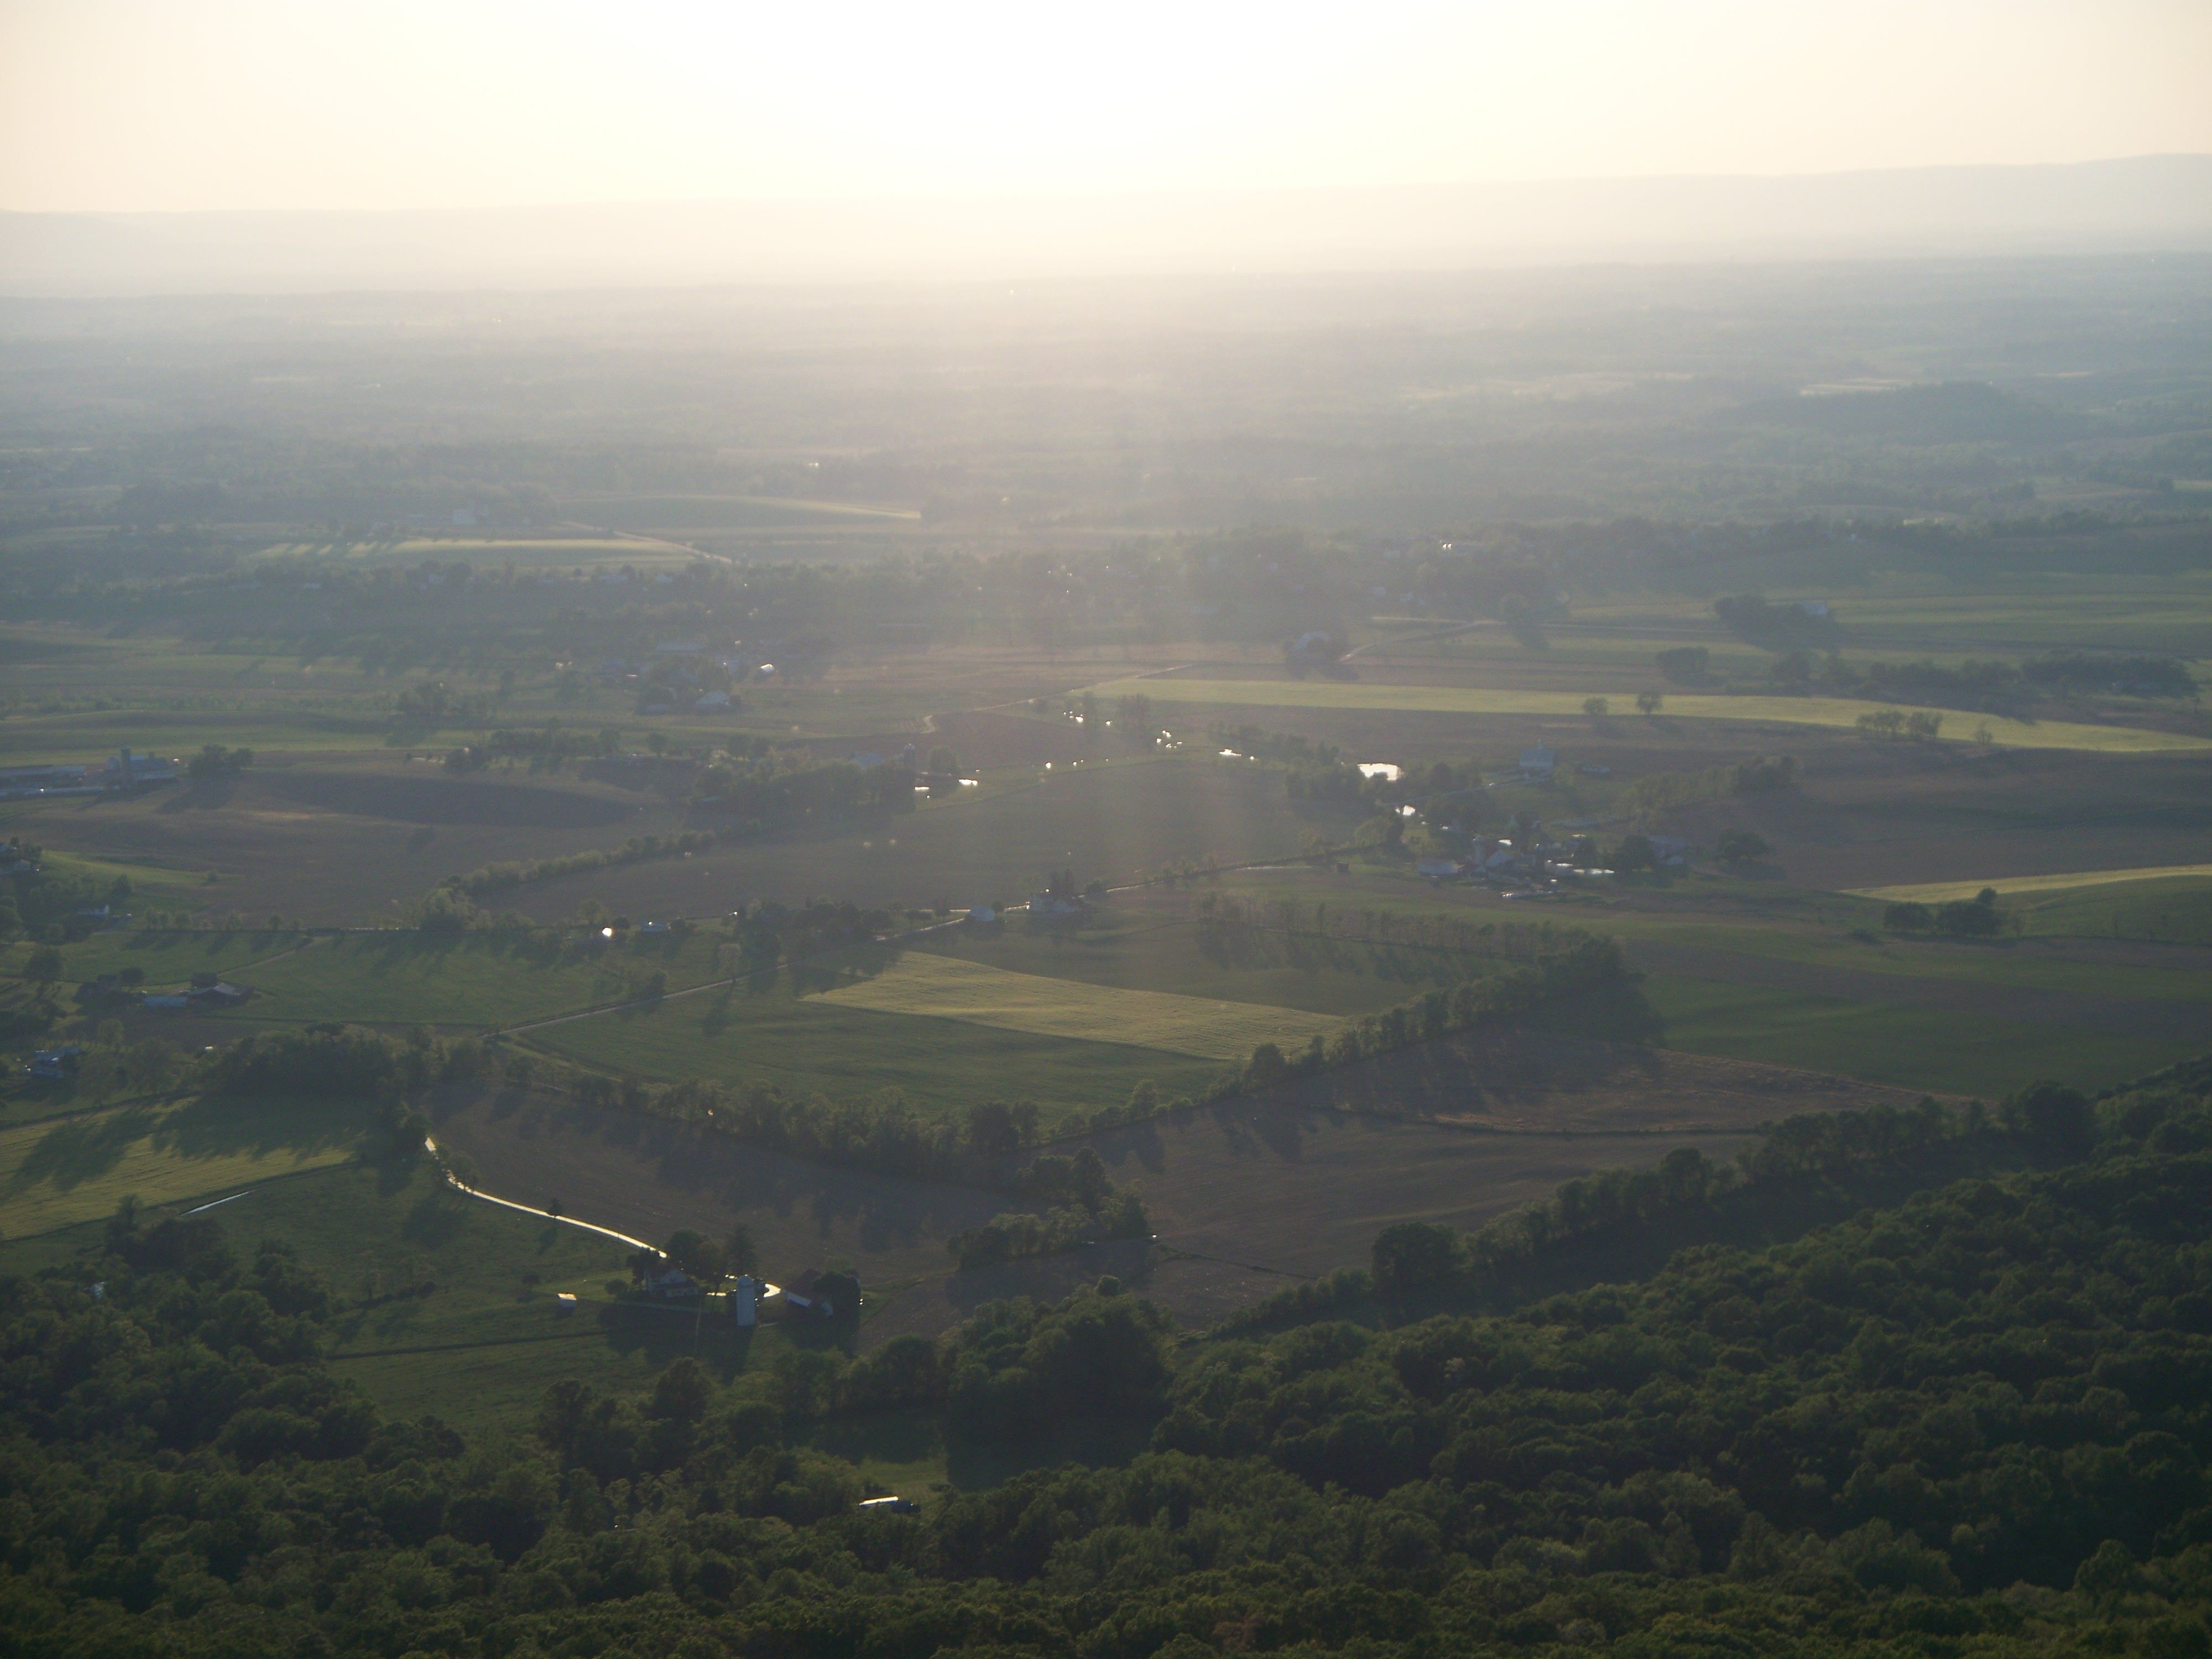 View from High Rock overlooking the Maryland